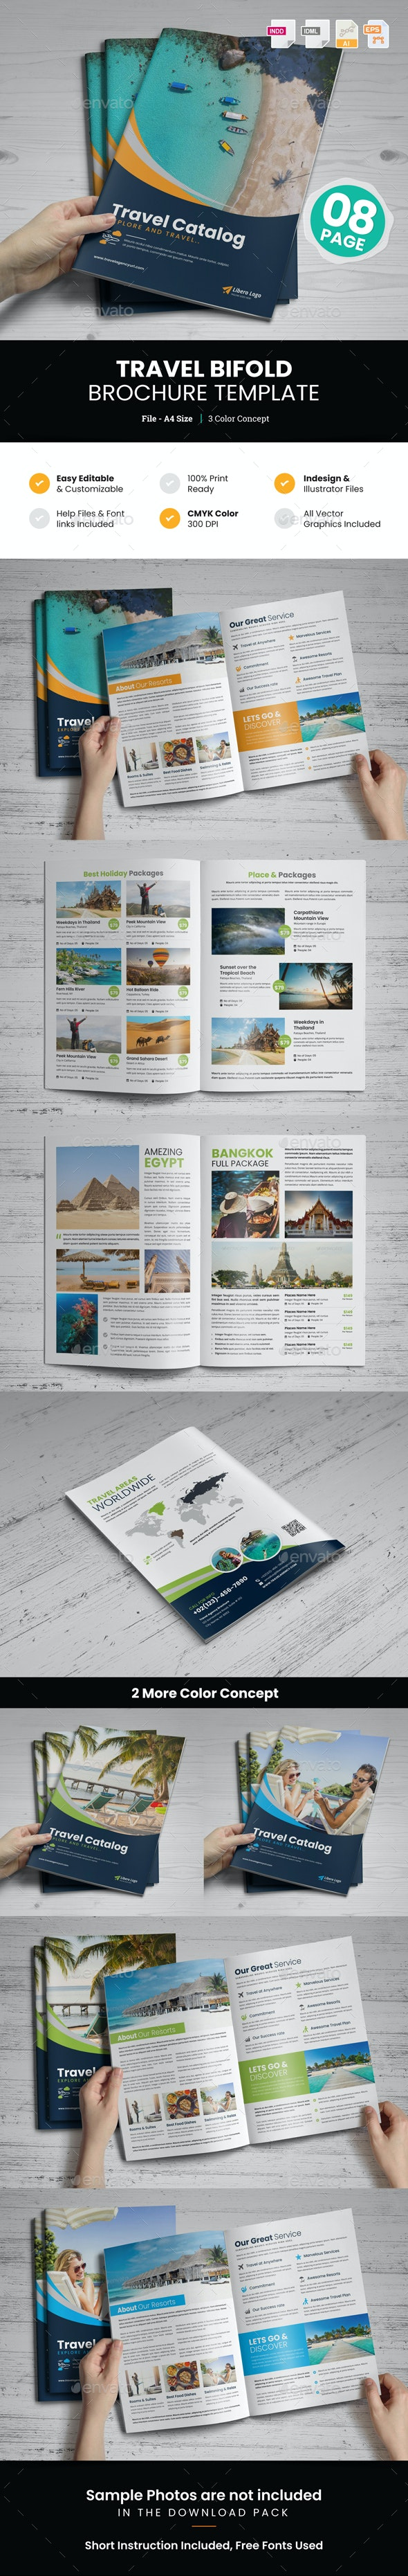 Holiday Travel Bifold Brochure Template v1 - Corporate Brochures